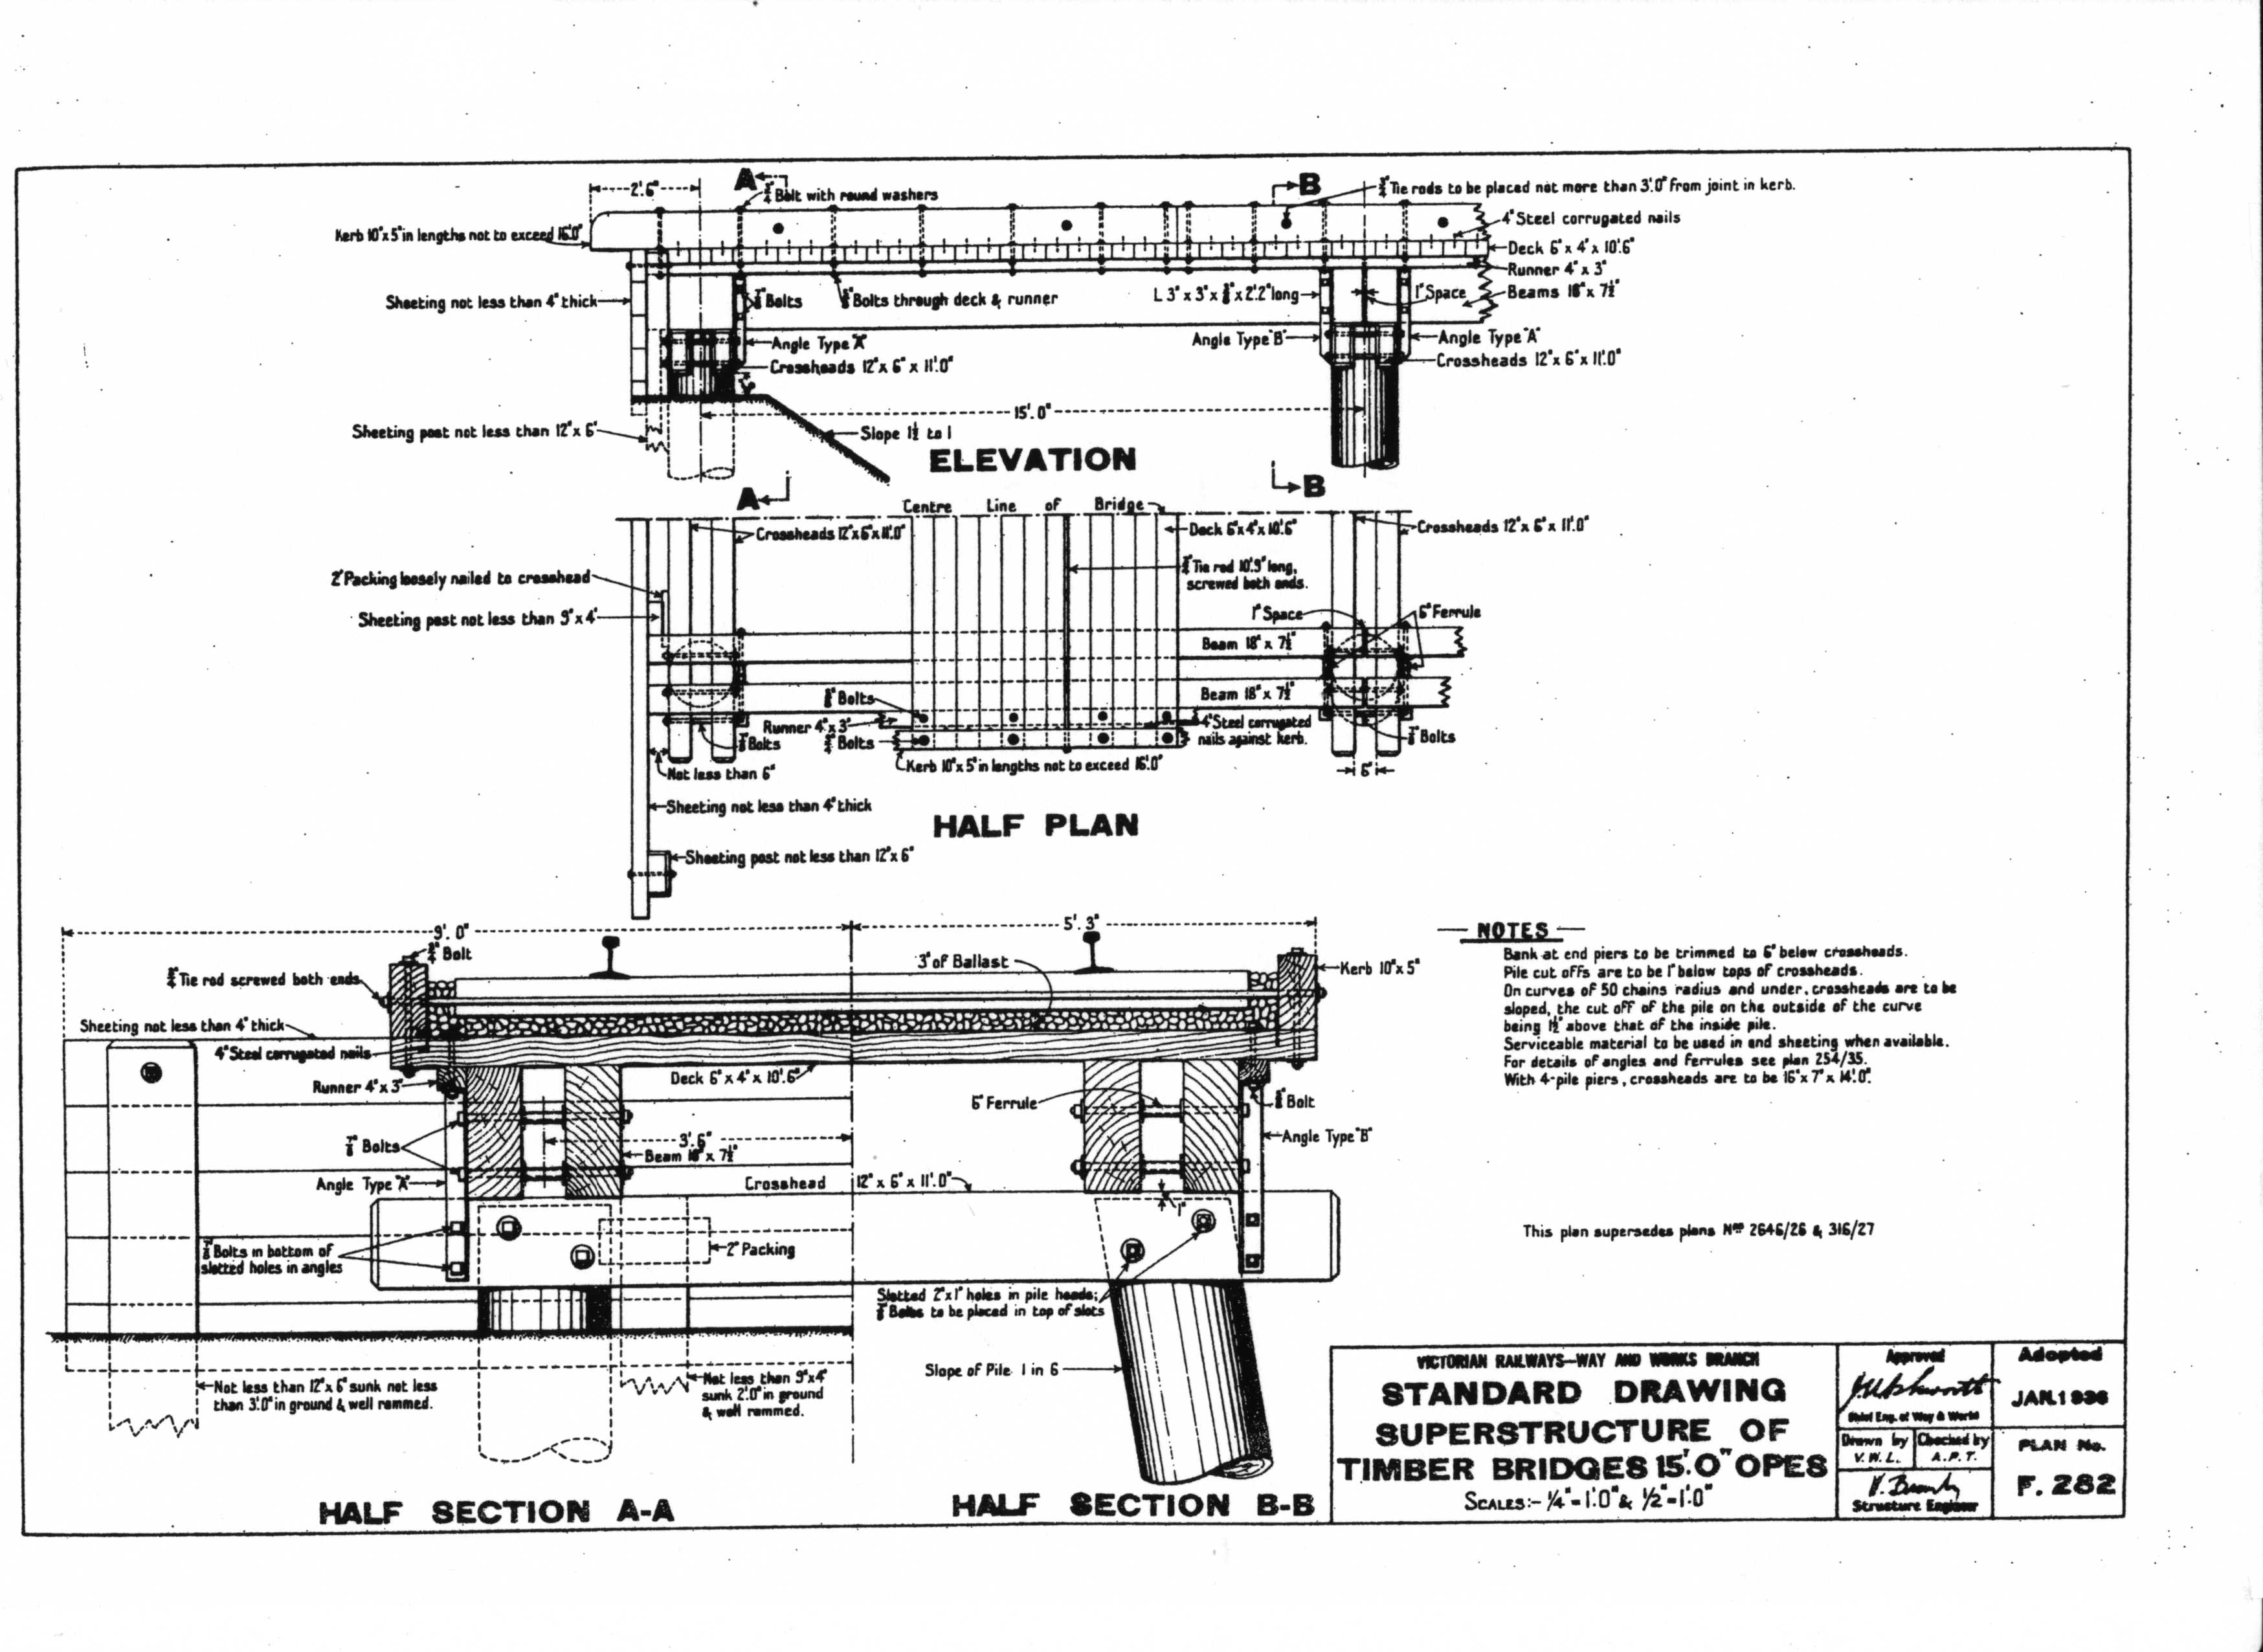 Infastructure Home Beam Bridge Diagram F 285a Ironwork For Gates 286 Portable Gang Shelter 287 Suburban Station Booking Counter 289 Bedplates I Bridges